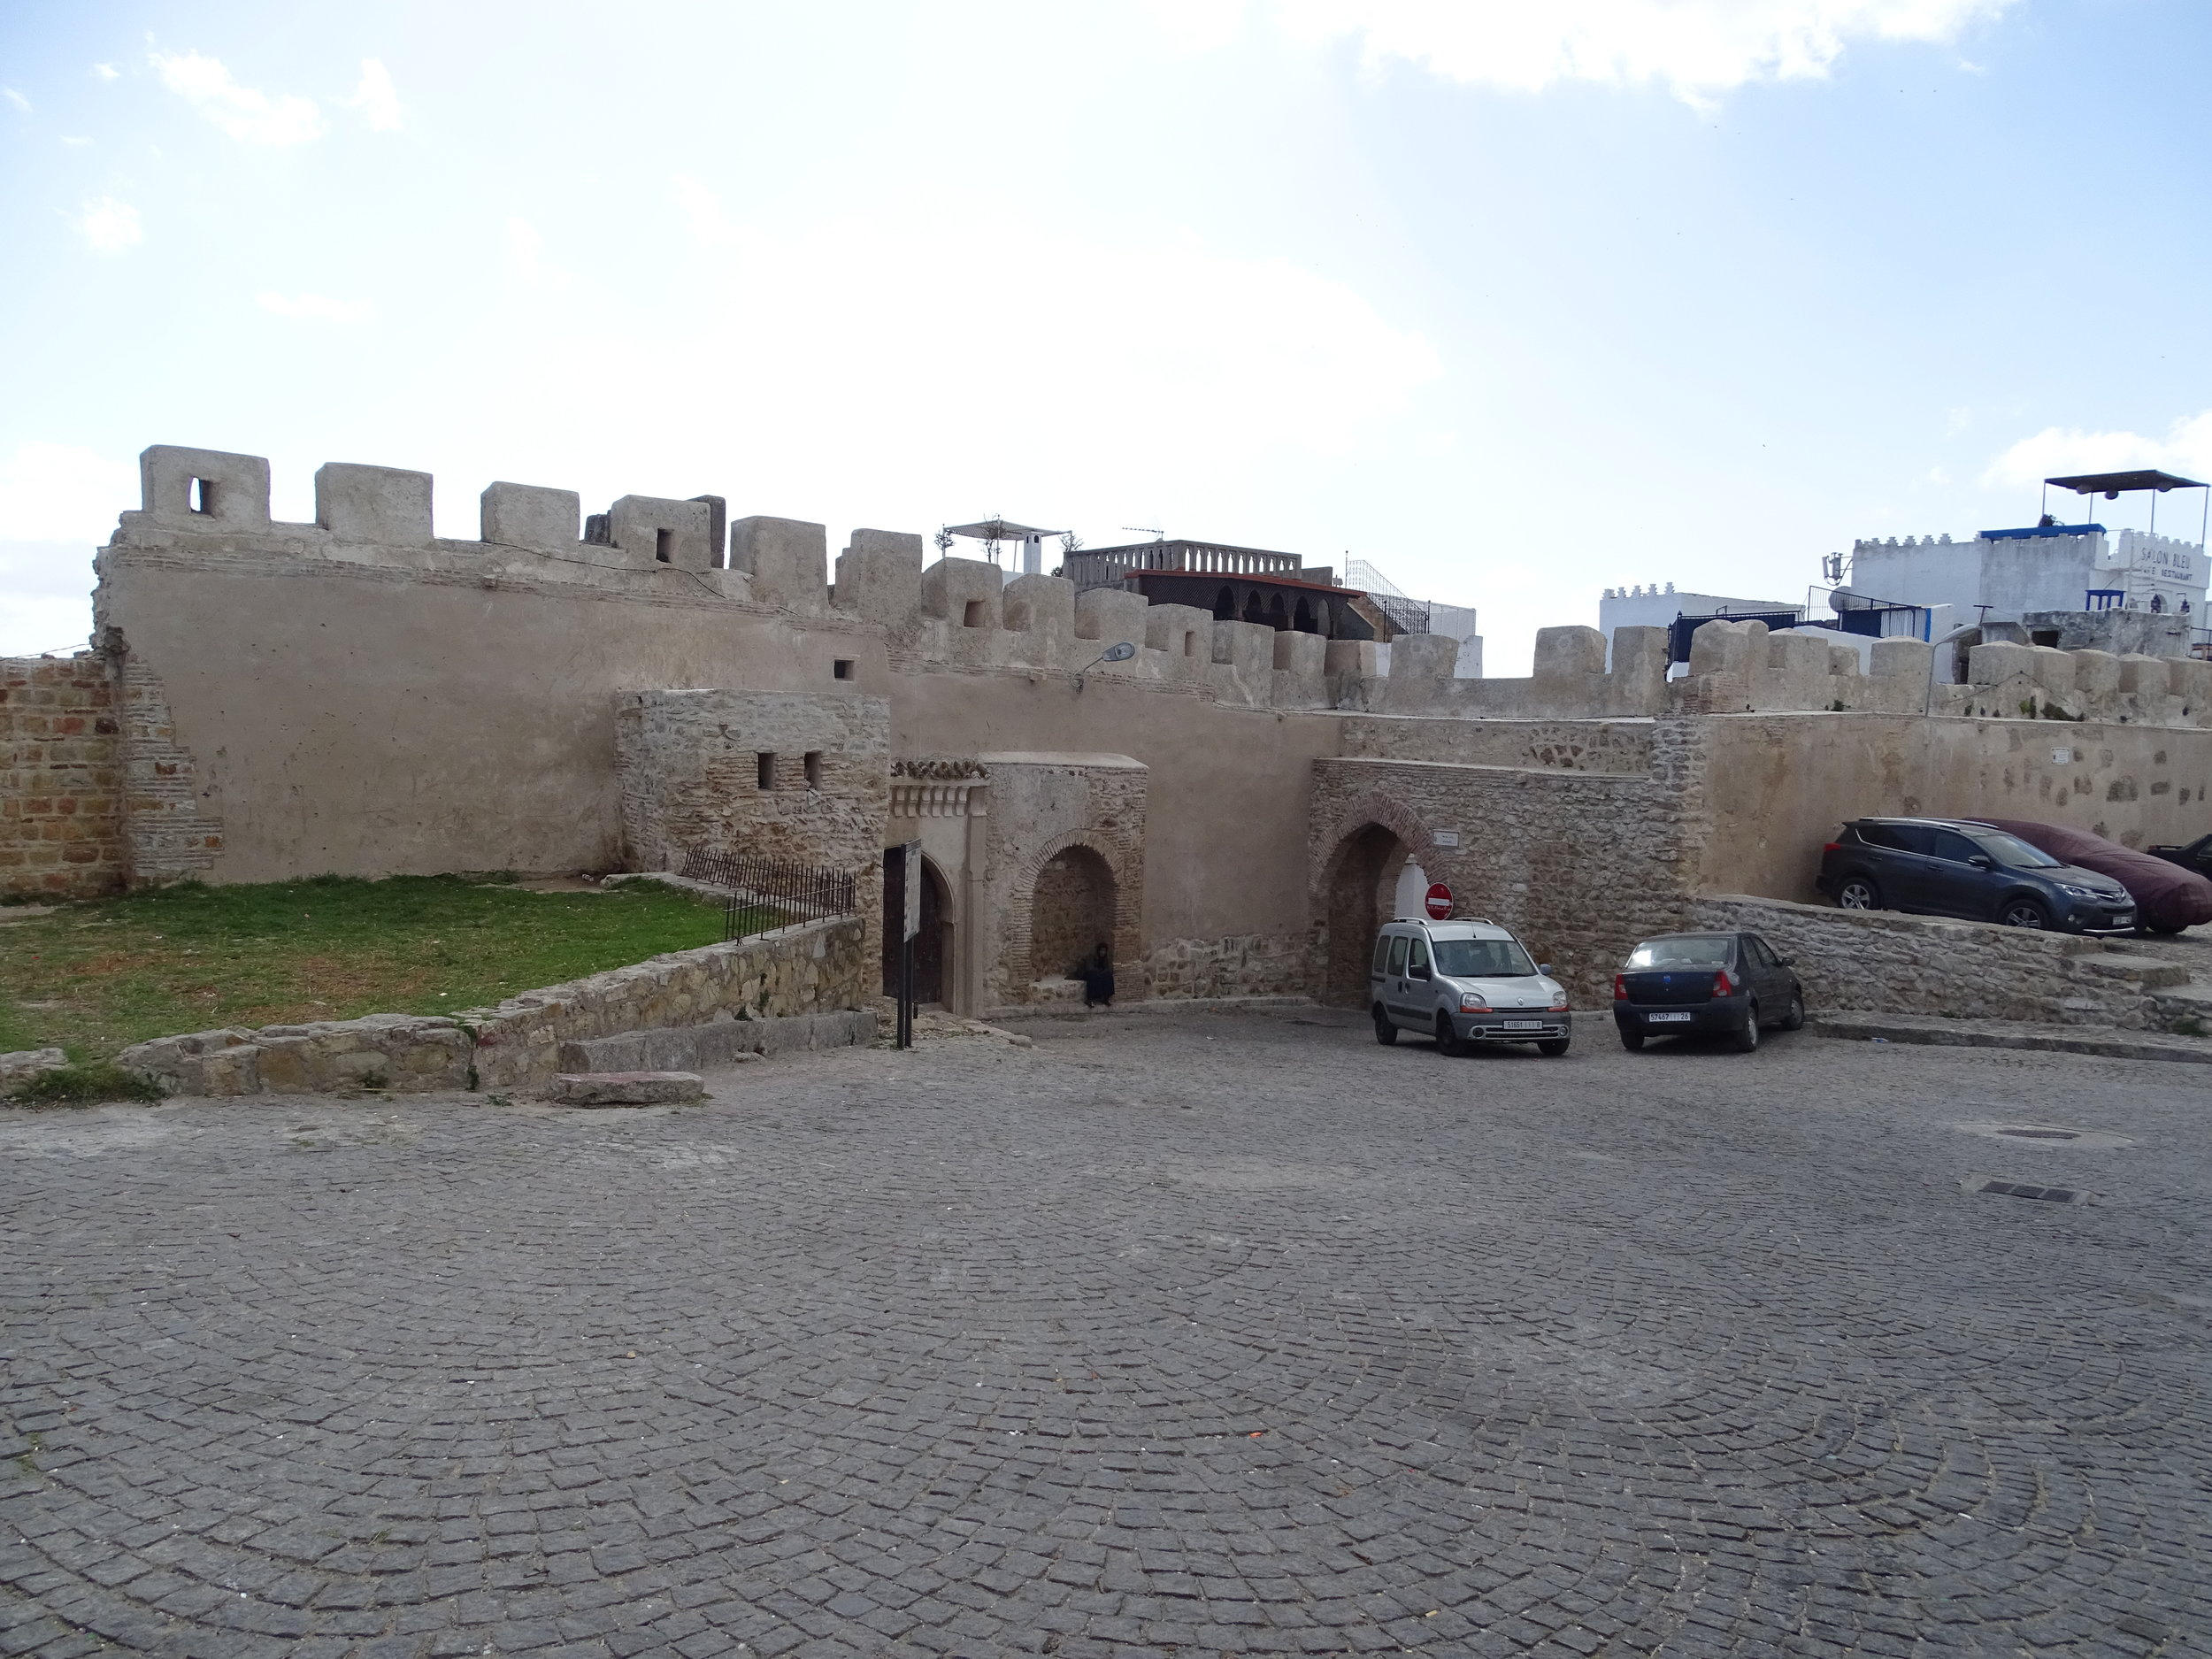 One of the entrances to the medina and a a view of the wall that surrounds it